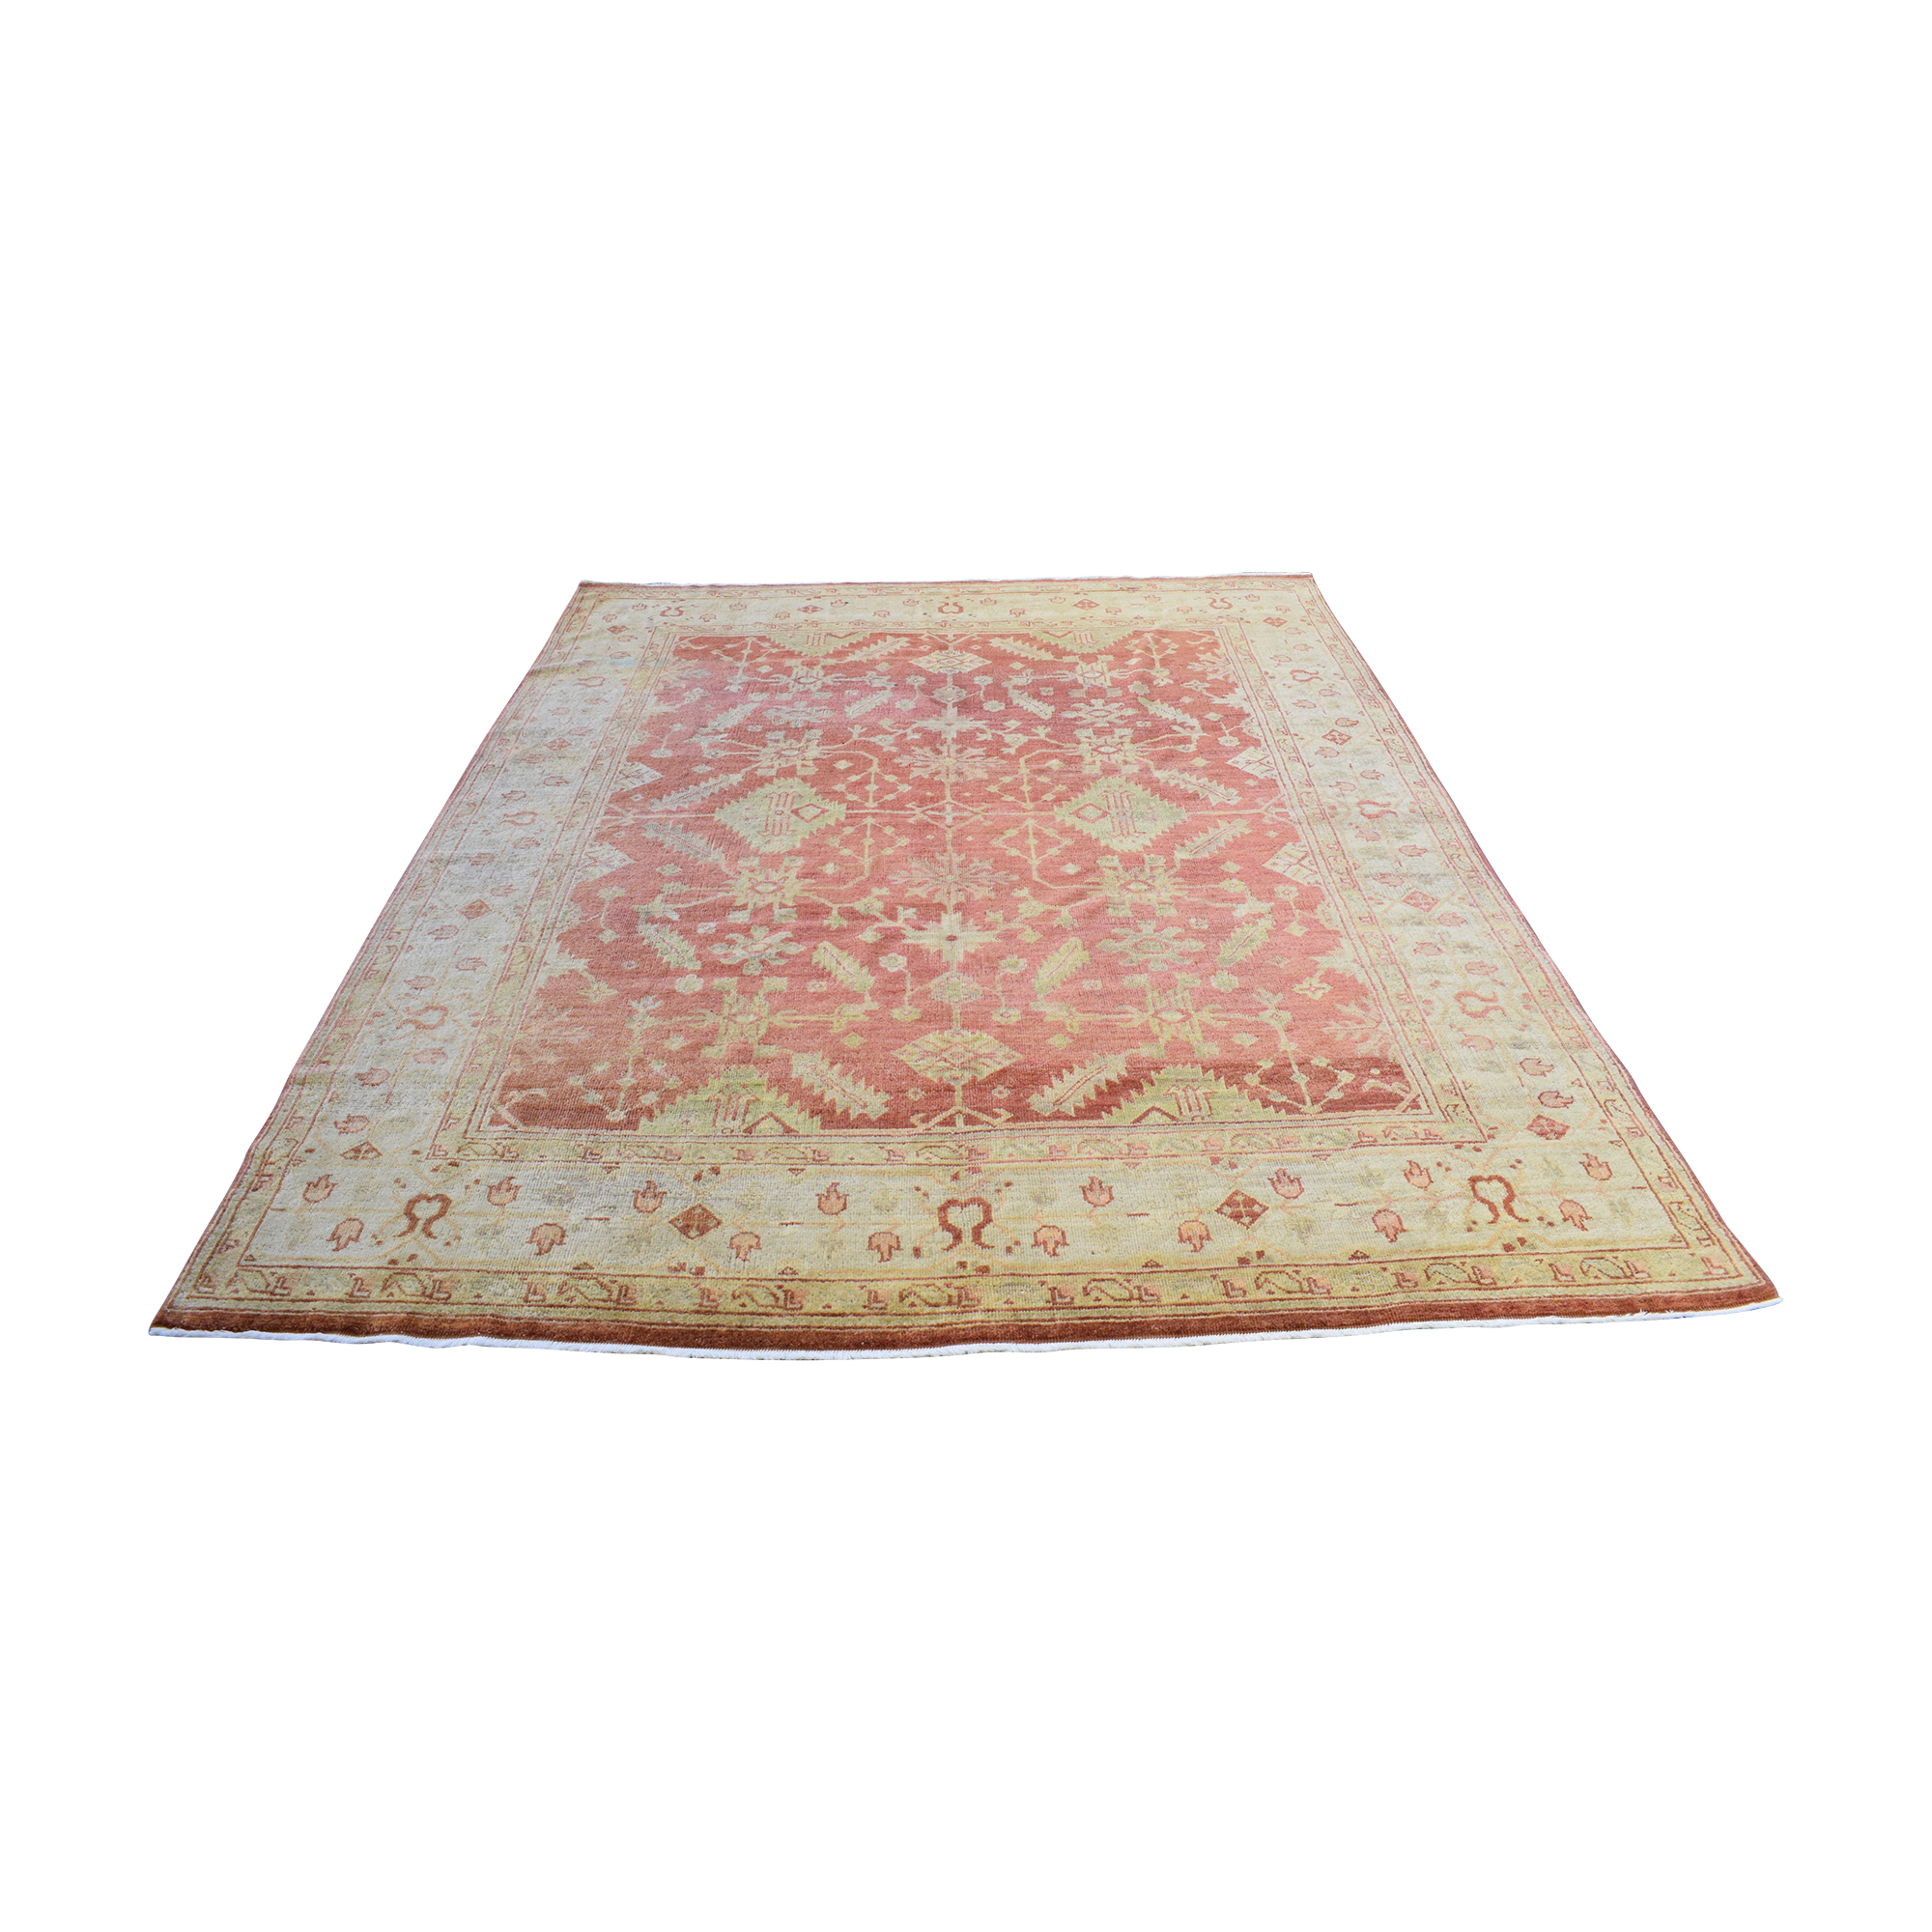 ABC Carpet & Home ABC Carpet & Home Area Rug ct